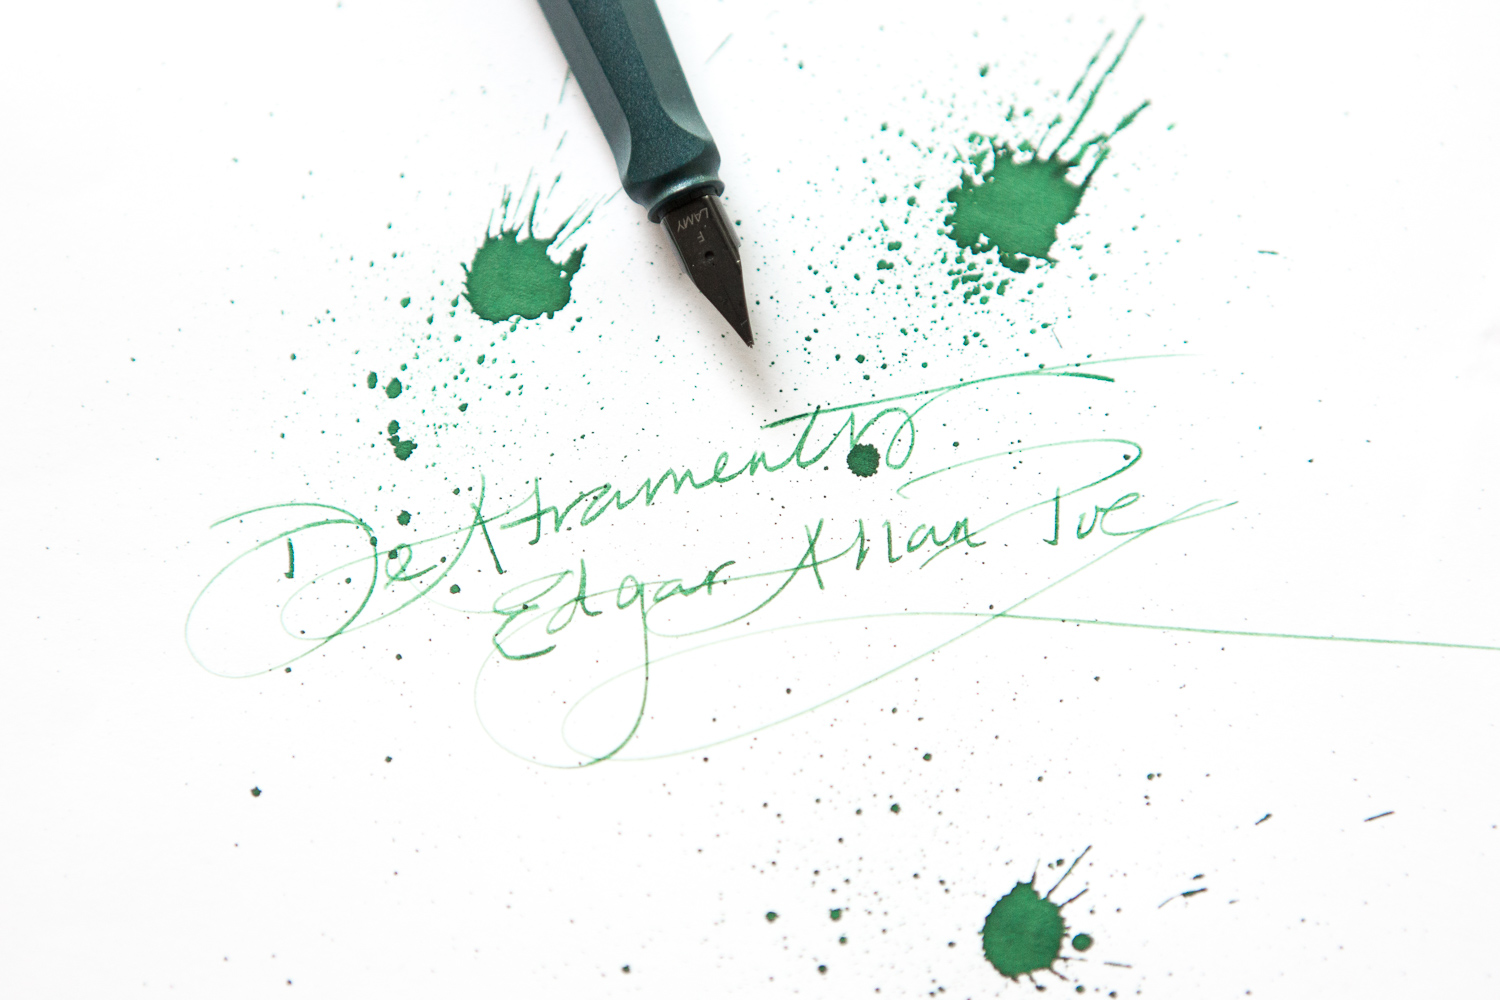 Edgar Allan Poe fountain pen ink.